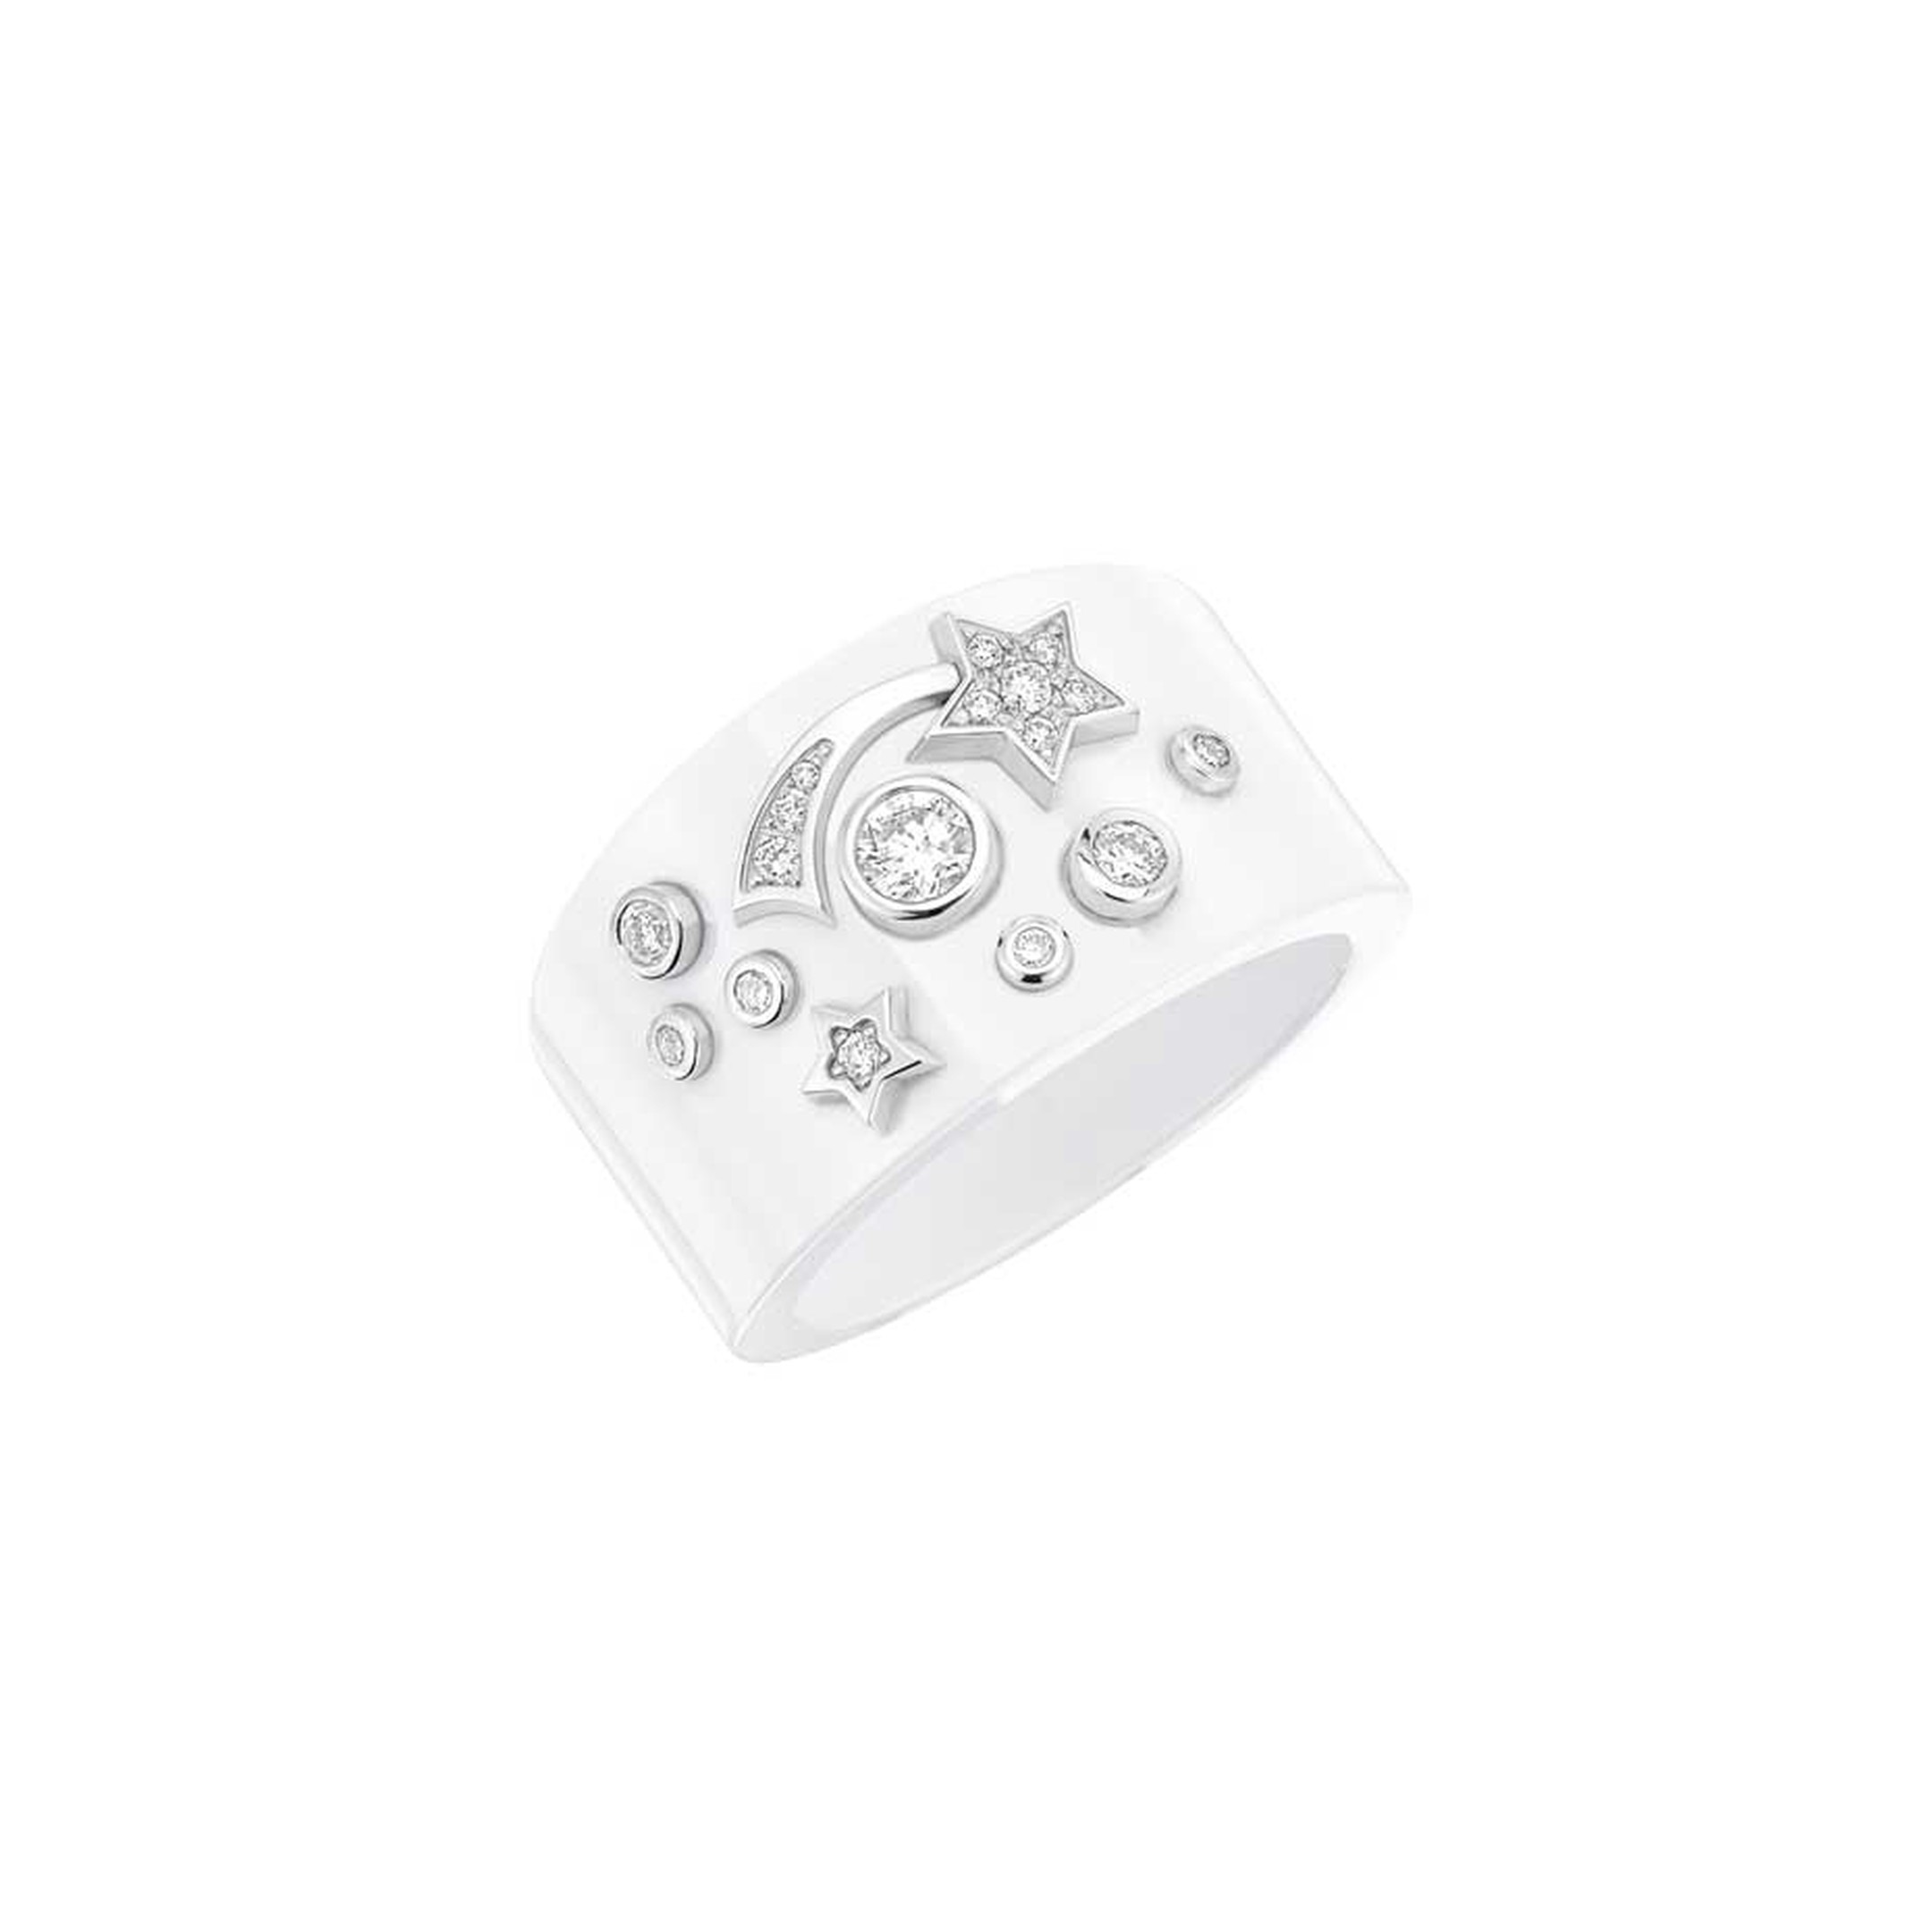 Chanel Cosmique ring in white ceramic and white gold set with brilliant-cut diamonds.